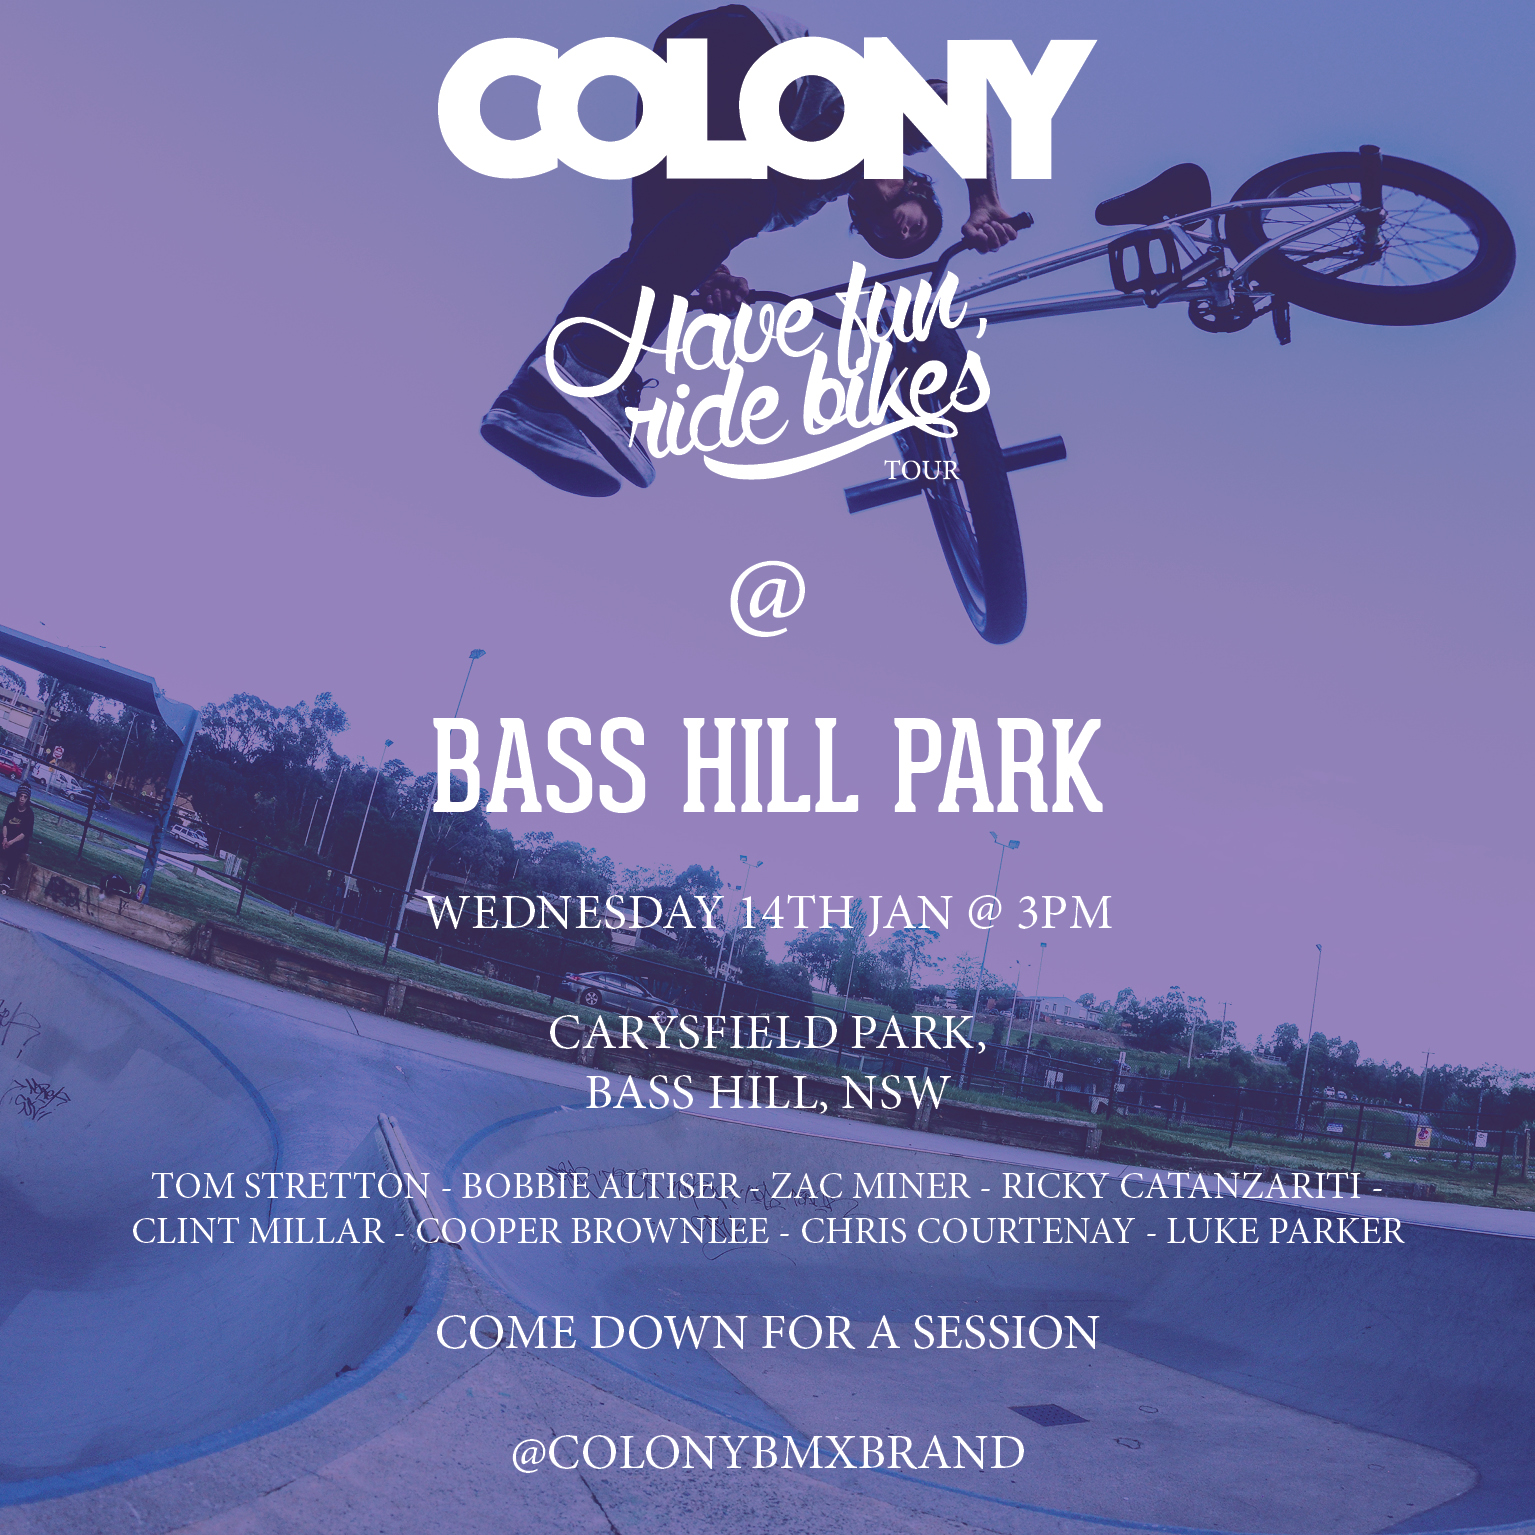 COLONY jan 2015 tour flyer bass hill